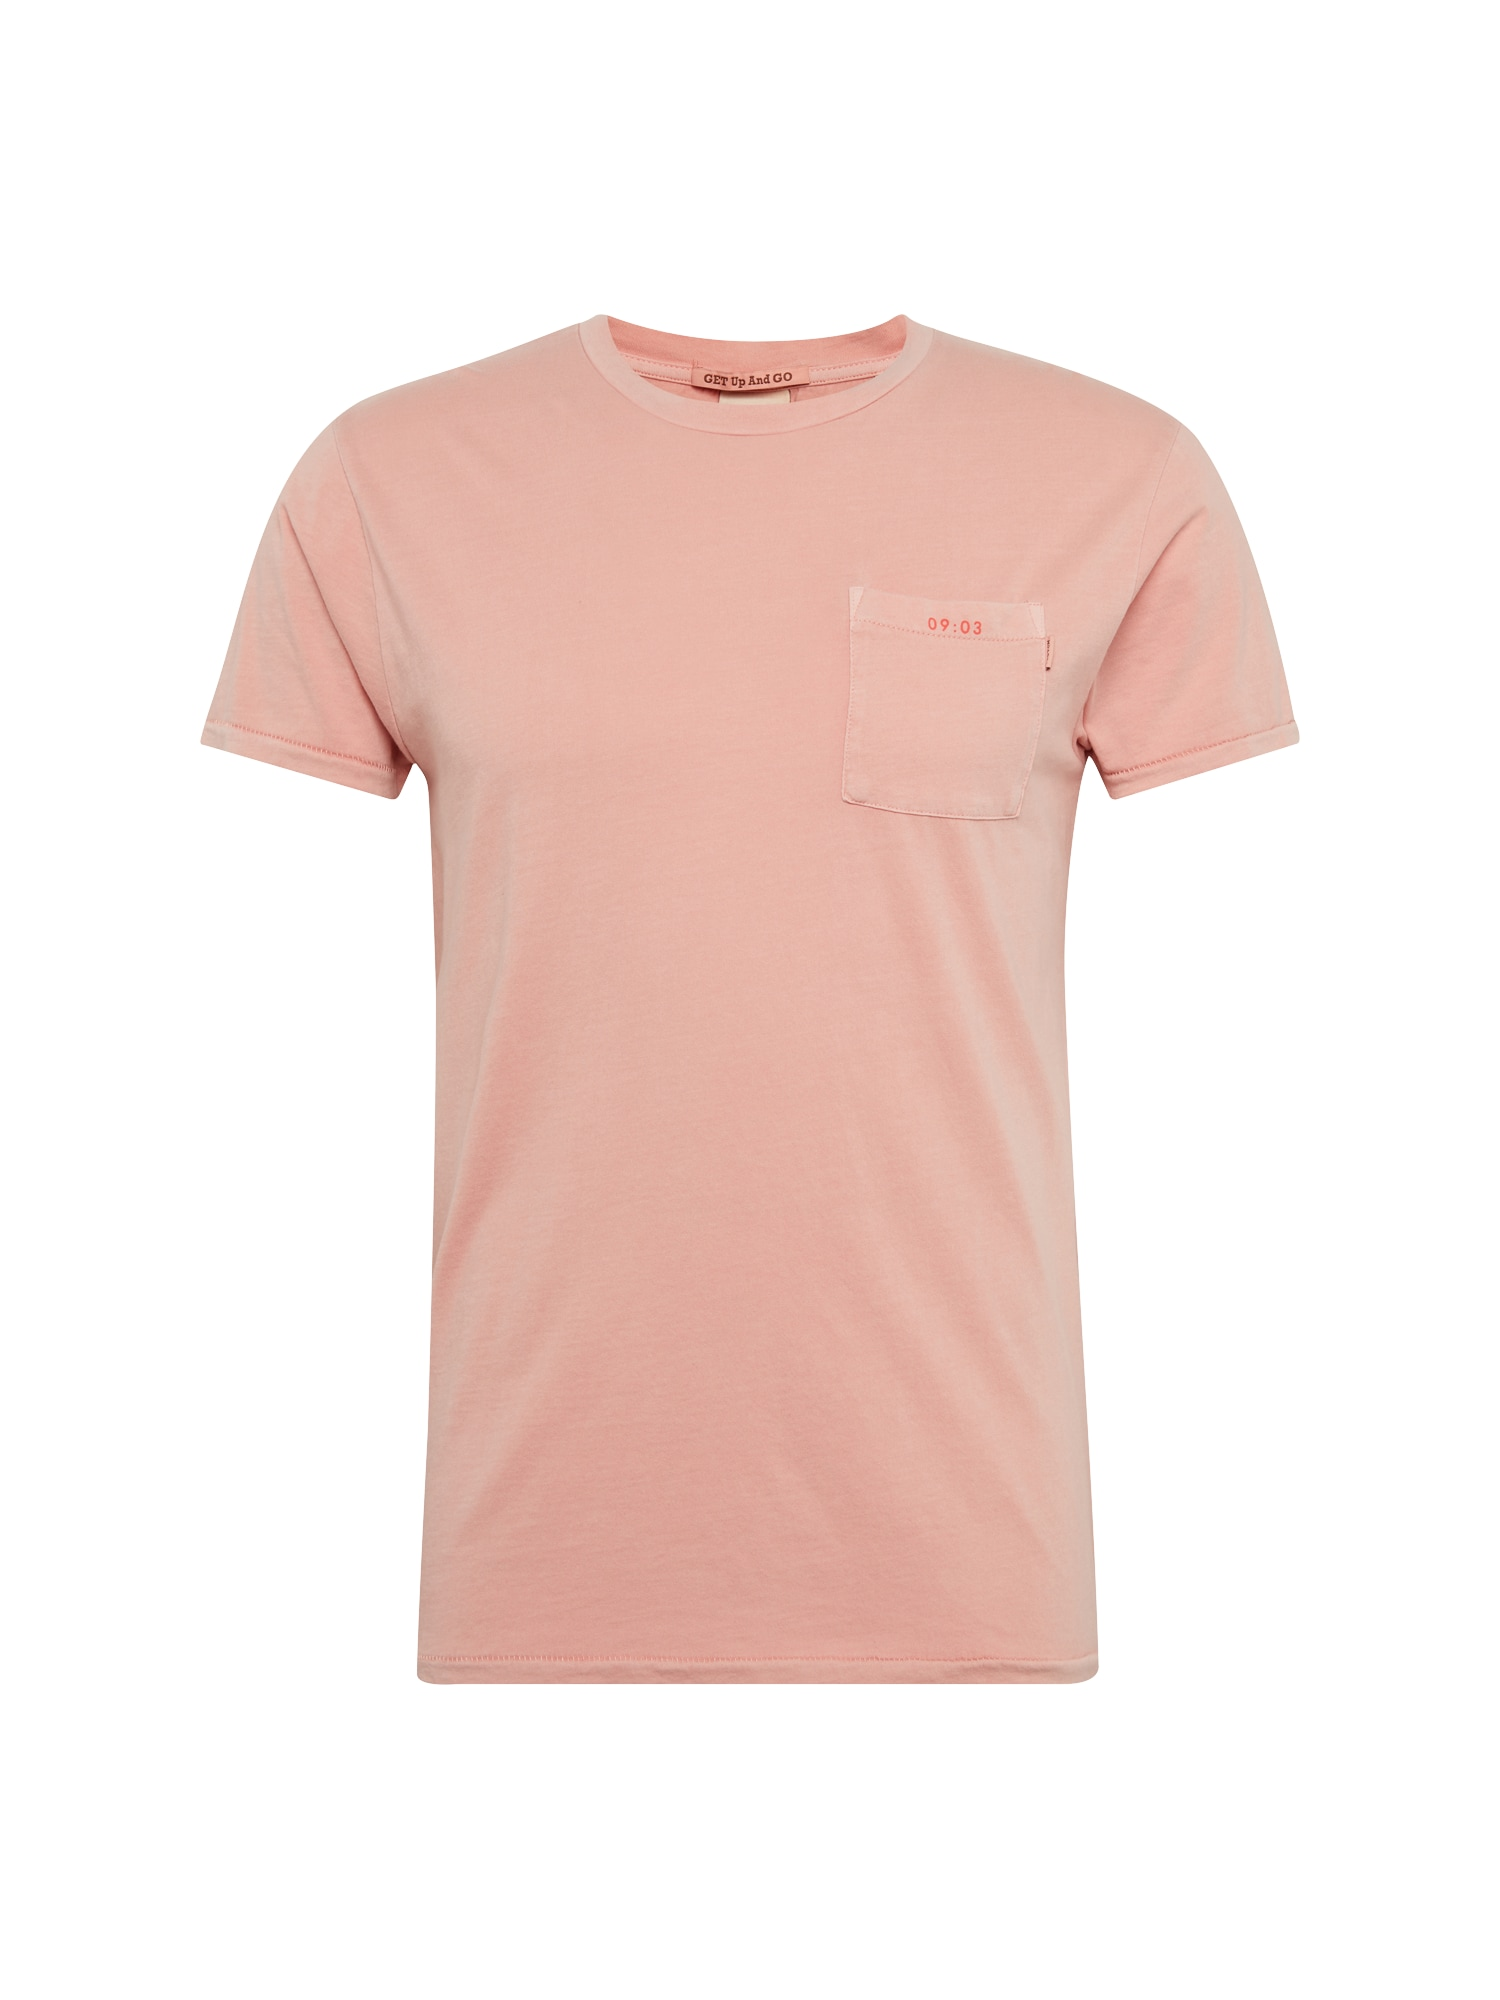 SCOTCH  and  SODA Heren Shirt Garment-dyed tee with chest pocket rosa